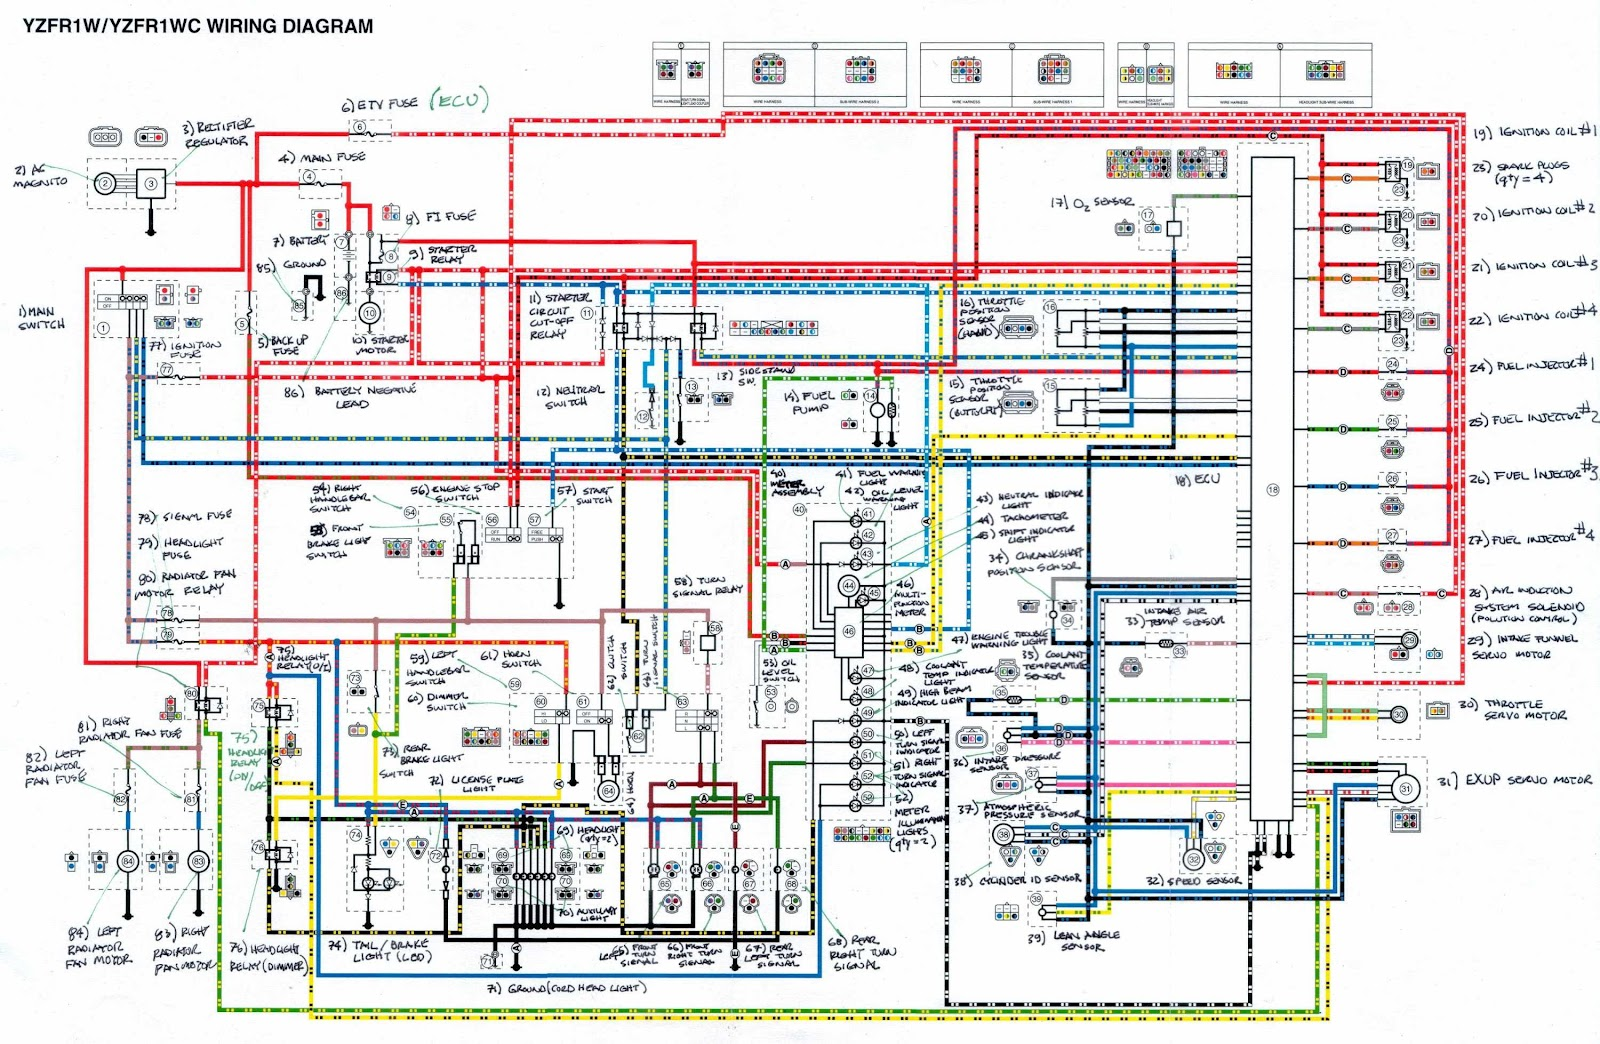 Yamaha+YZF R1+Motorcycle+Wiring+Diagram yamaha blaster wiring diagram the wiring diagram readingrat net 2000 yamaha r1 wiring diagram at edmiracle.co